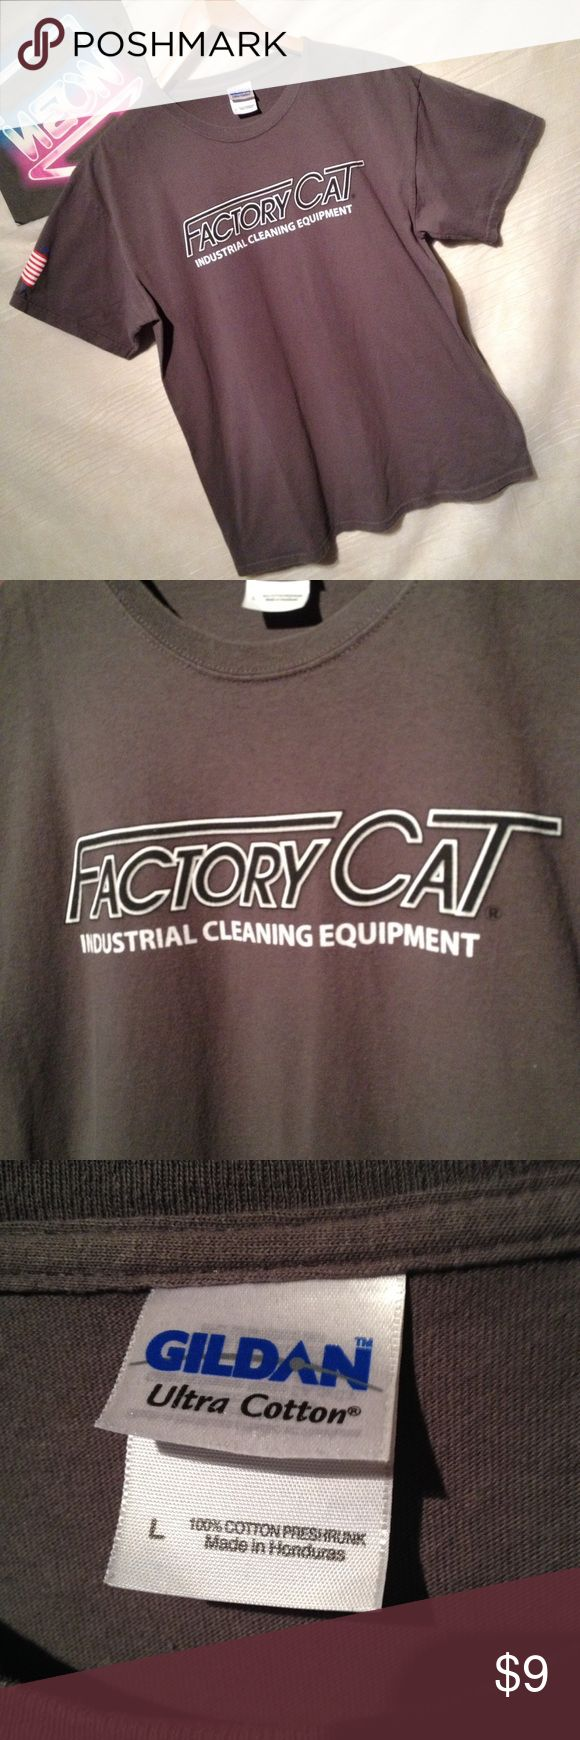 "Industrial supply factory cat gray shirt size L Used t-shirt with some color fading, no holes or tears with American flag on sleeve.  Ships from smoke free environment, 1 day handling.  Chest - 21"" shoulder to hem 27"" Gildan Shirts Tees - Short Sleeve"